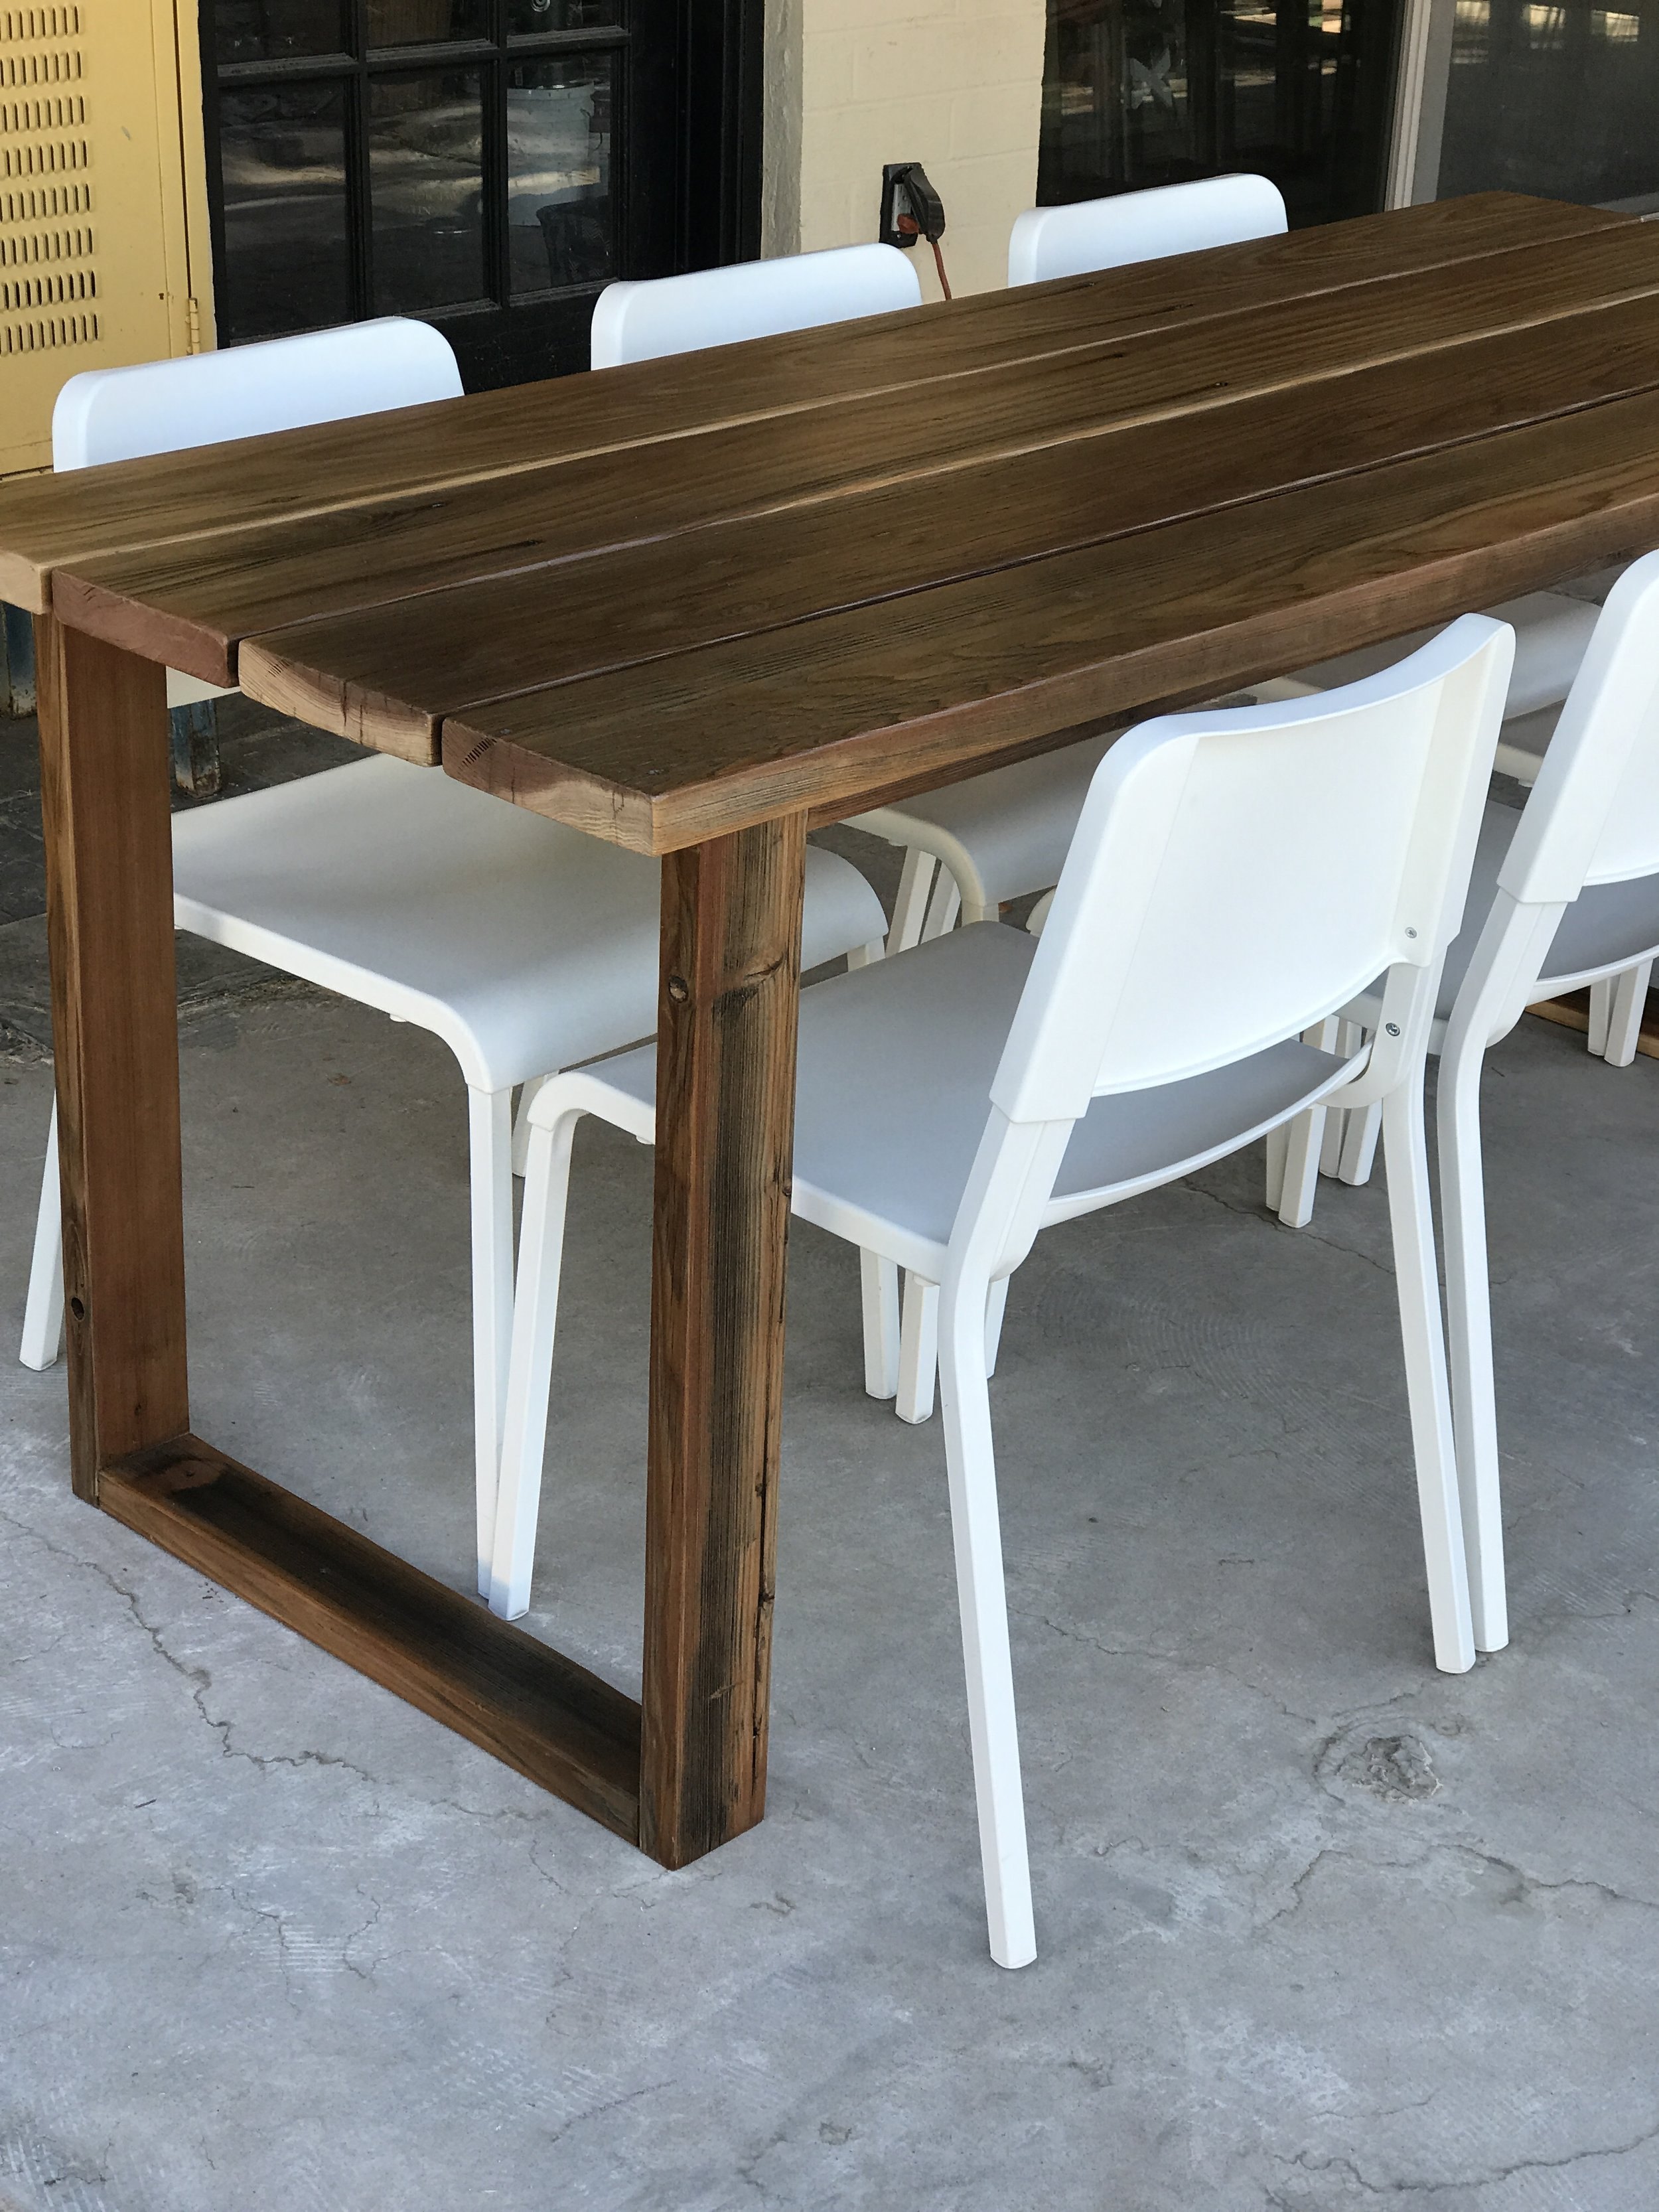 DIY Simple Outdoor Dining Table_3238.JPG